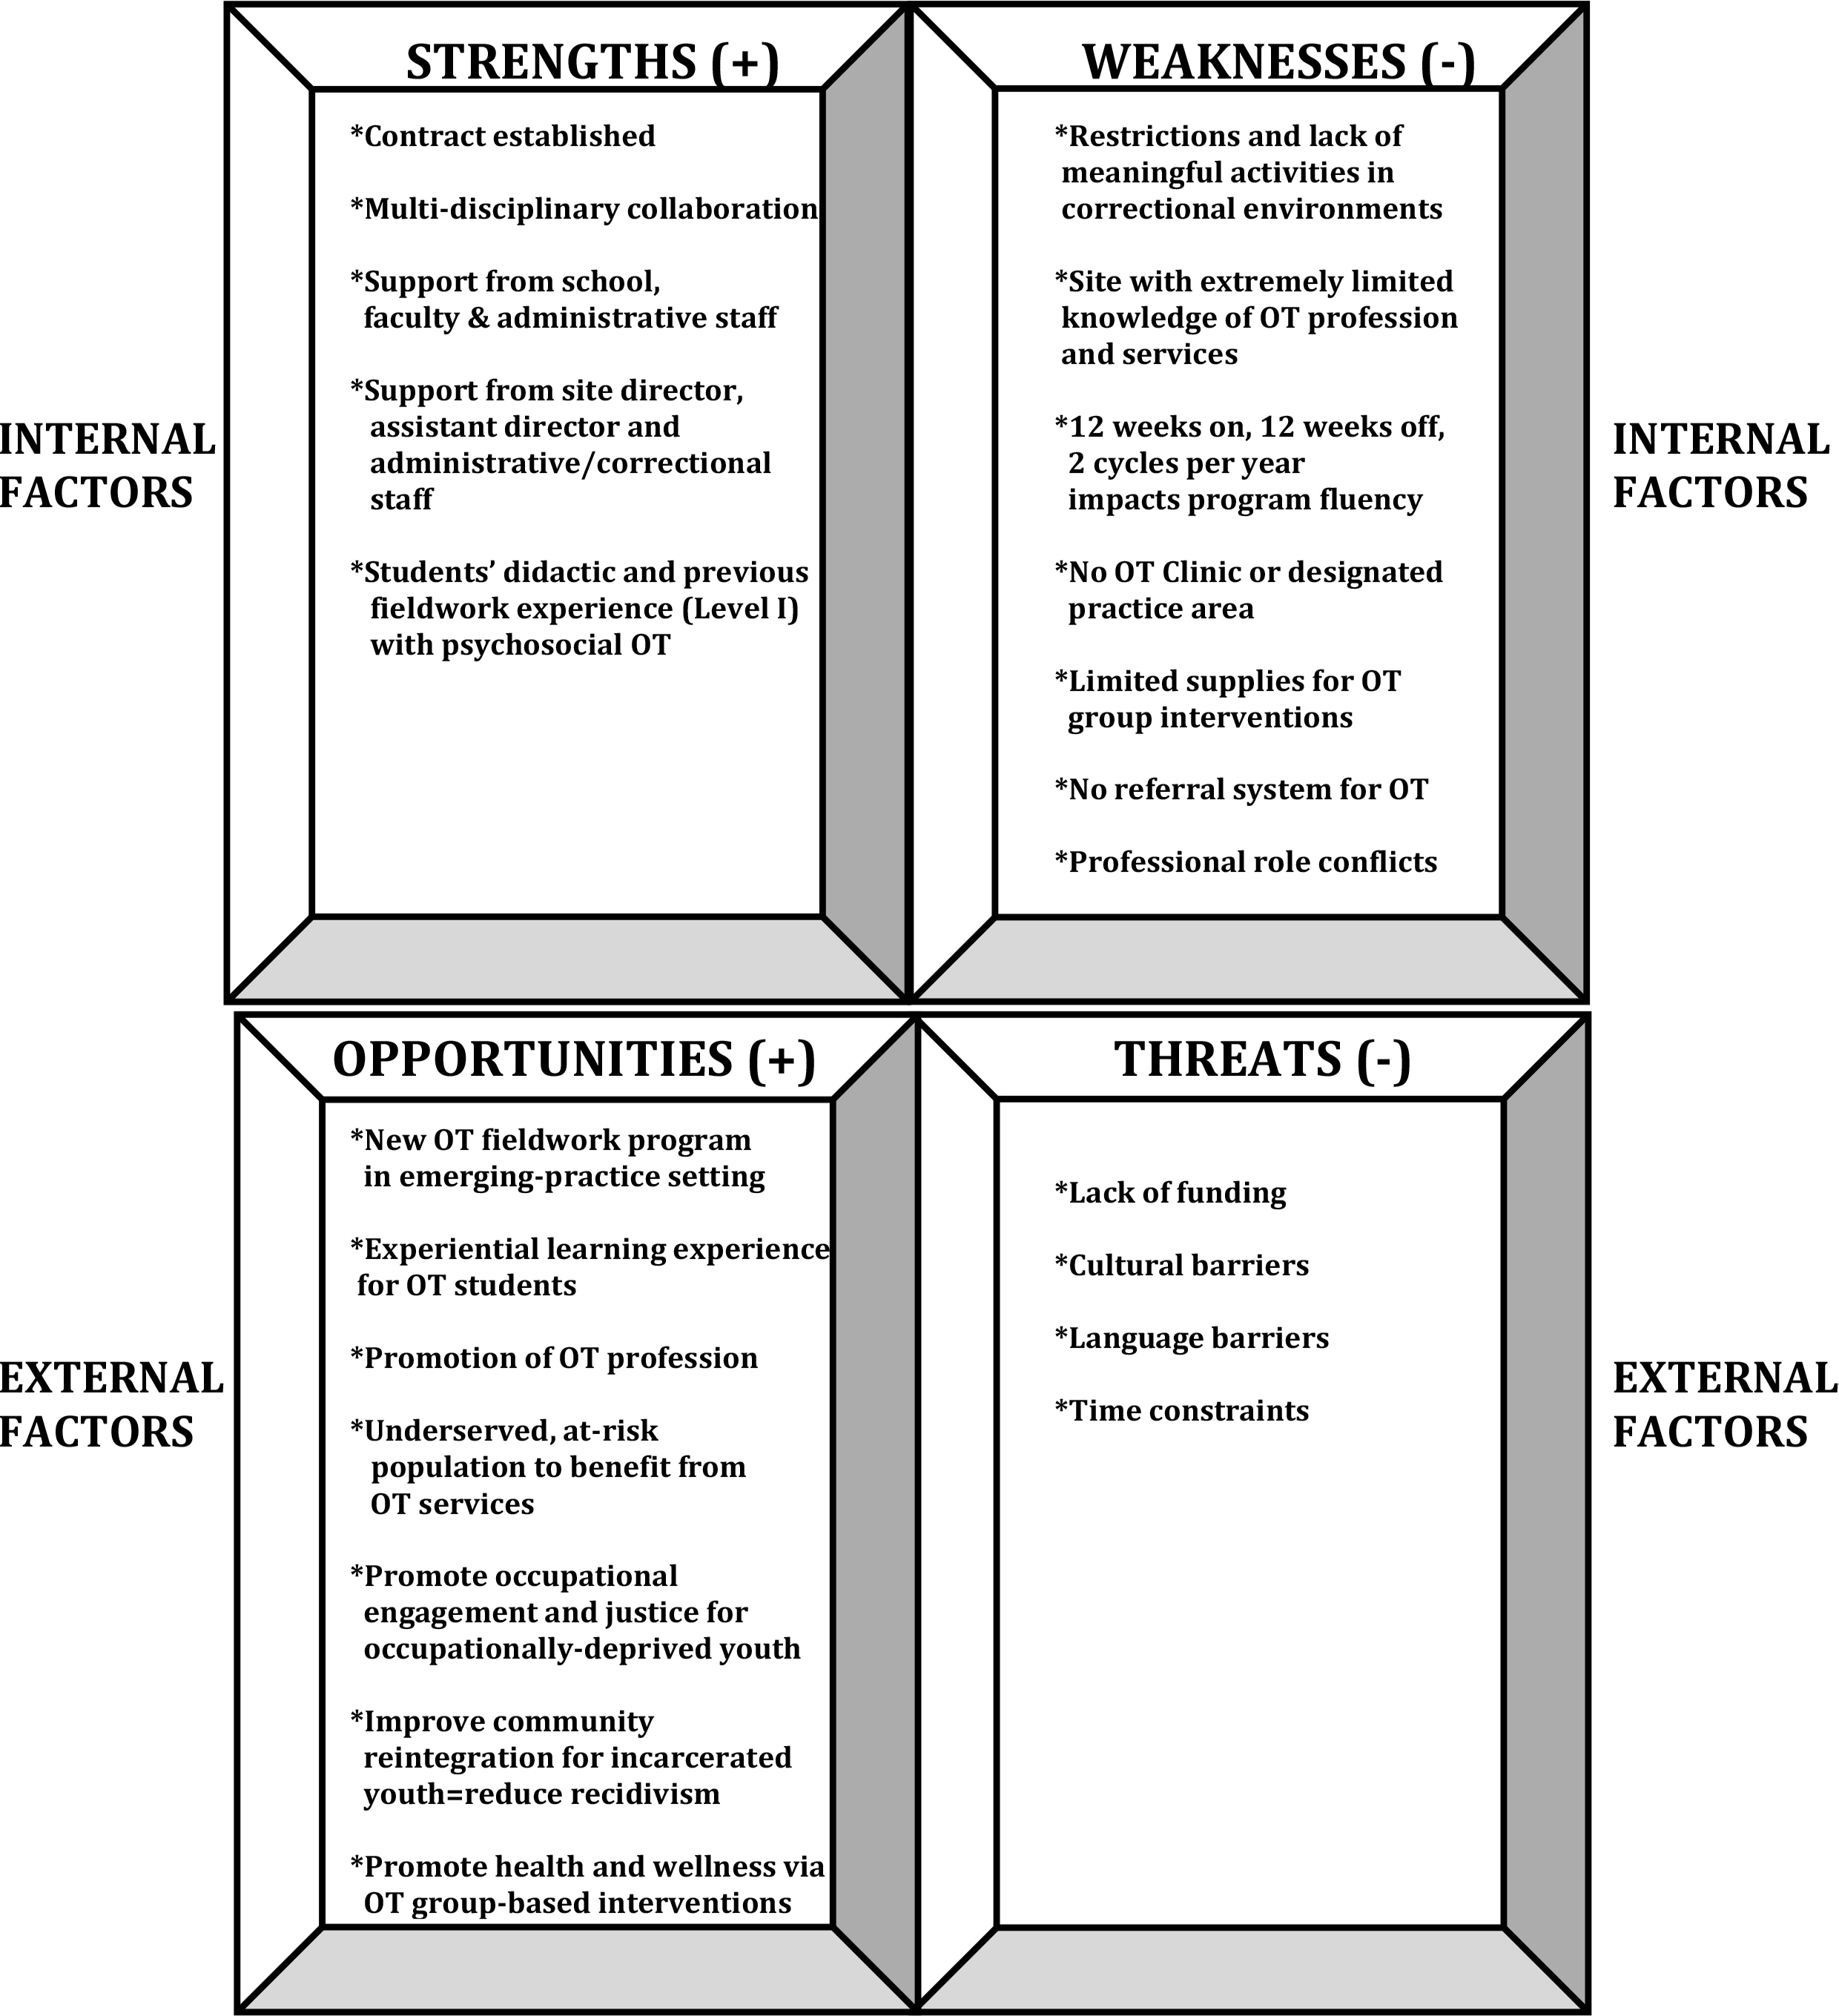 Sample Strengths, Weaknesses, Opportunities and Threats (SWOT) Analysis for Program Development in a Juvenile Detention Center